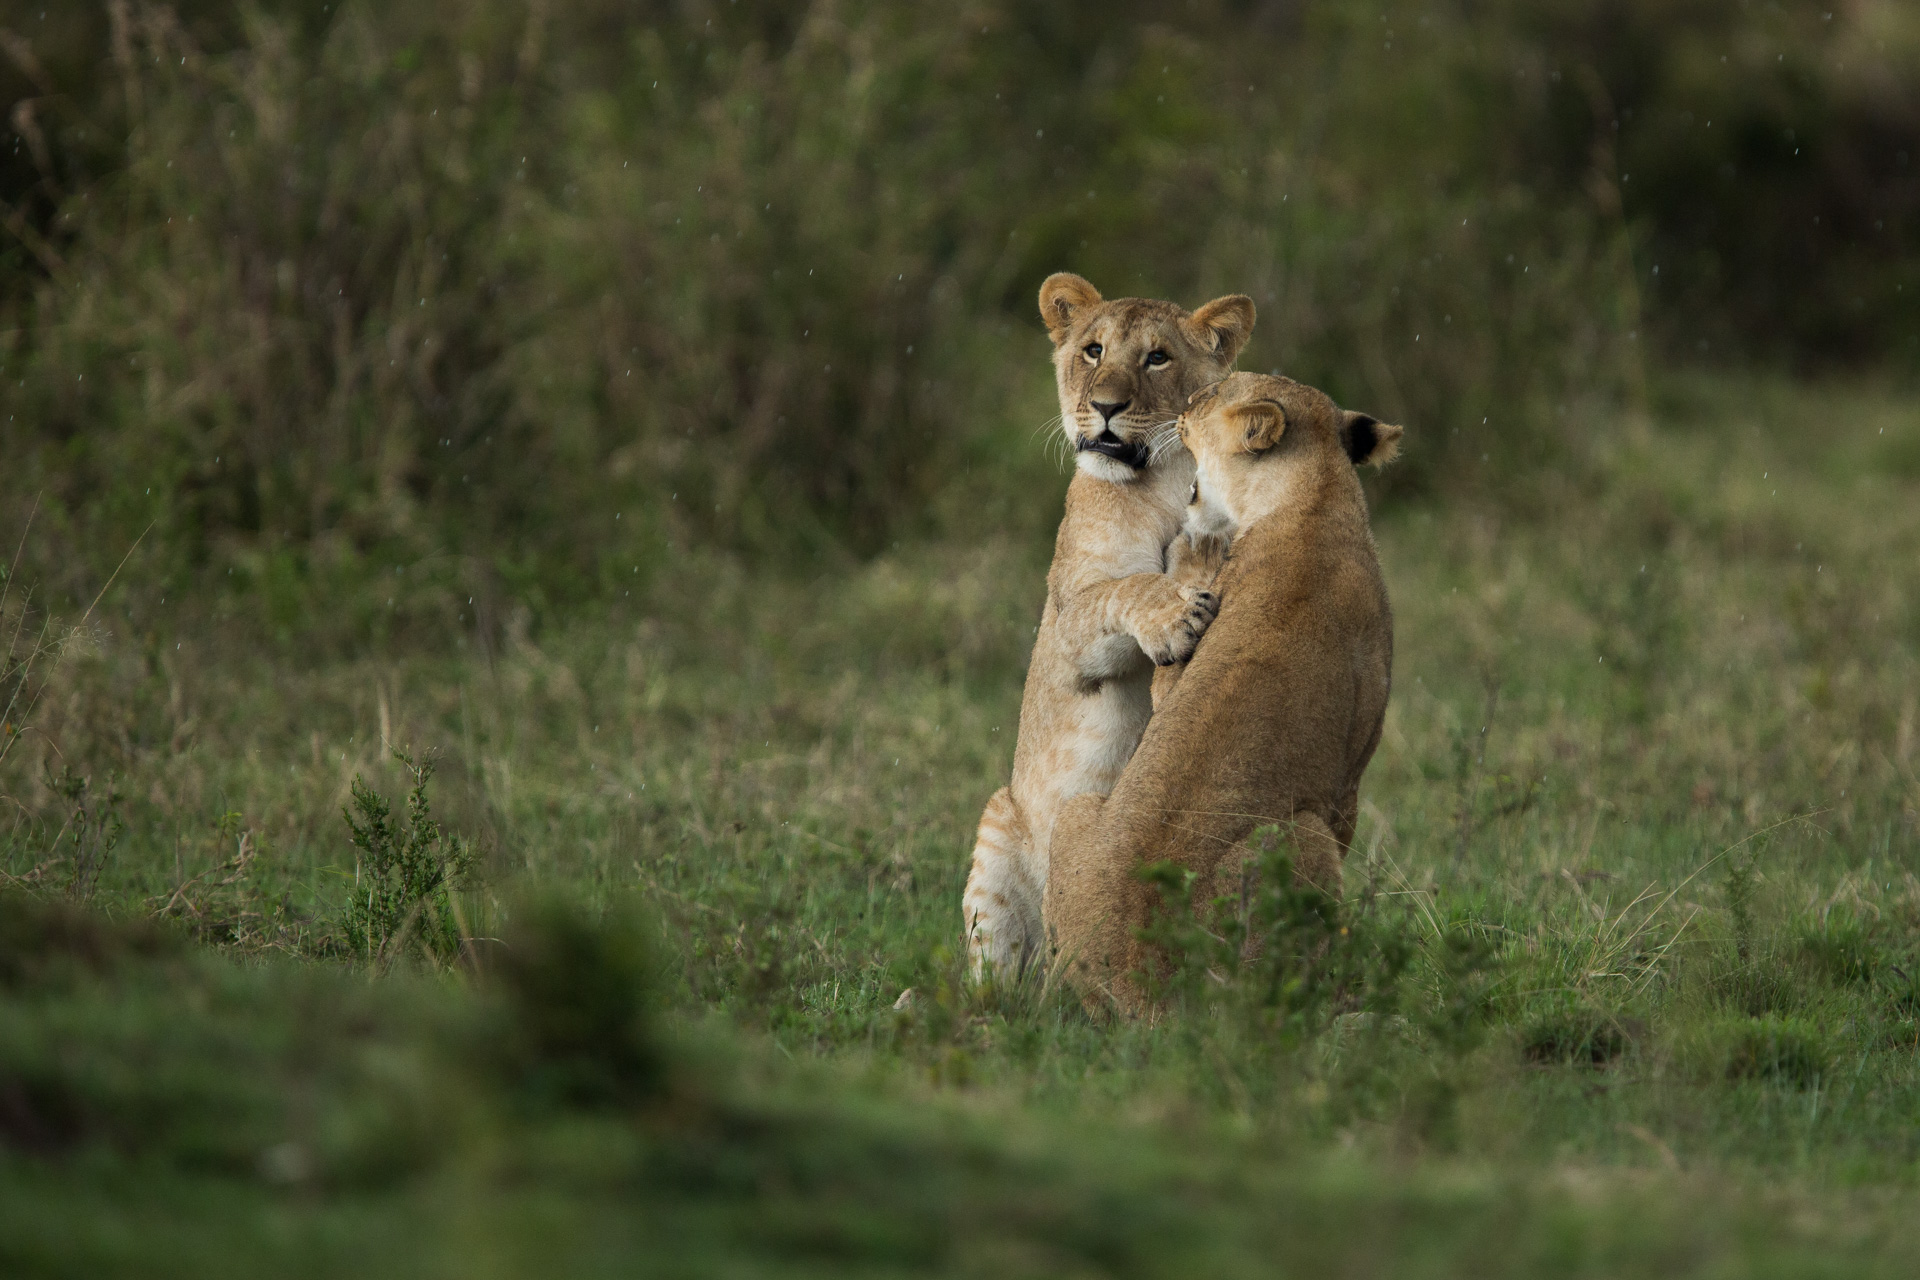 More of the lionesses playing